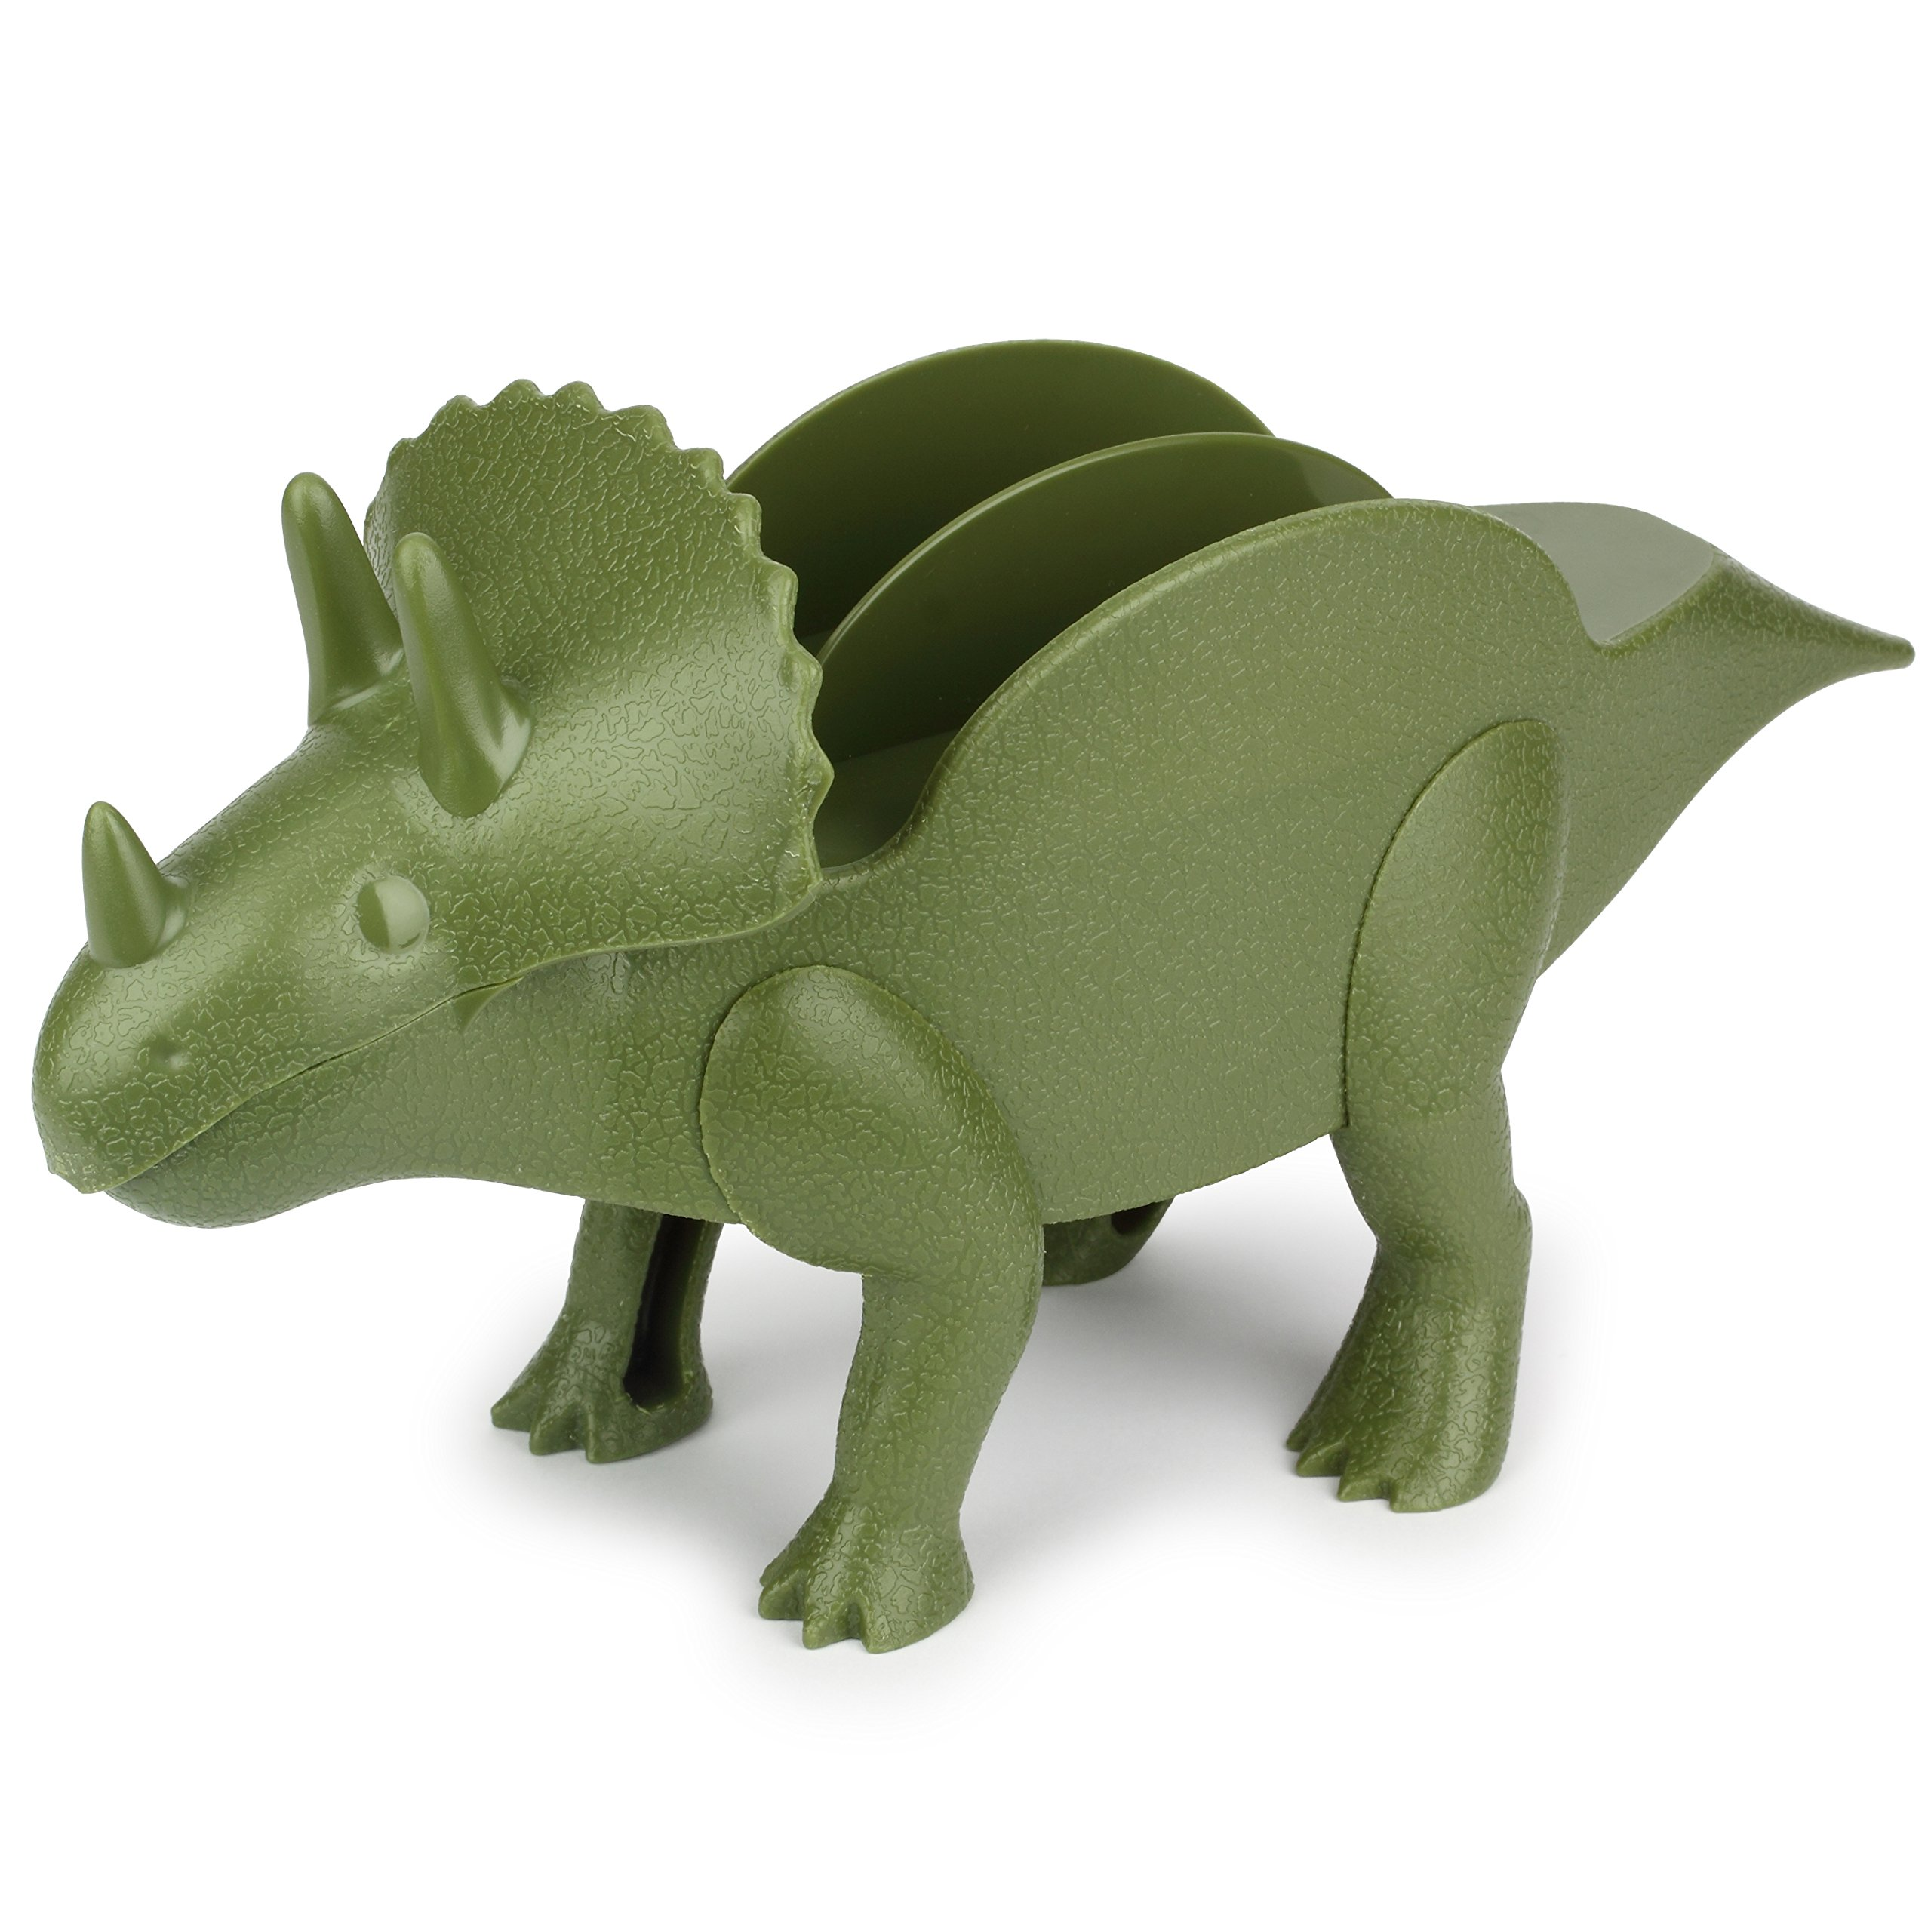 KidsFunwares TriceraTACO Taco Holder - The Ultimate Prehistoric Taco Stand for Jurassic Taco Tuesdays and Dinosaur Parties - Holds 2 Tacos - The Perfect Gift for Kids and Kidults that Love Dinosaurs by KidsFunwares (Image #2)